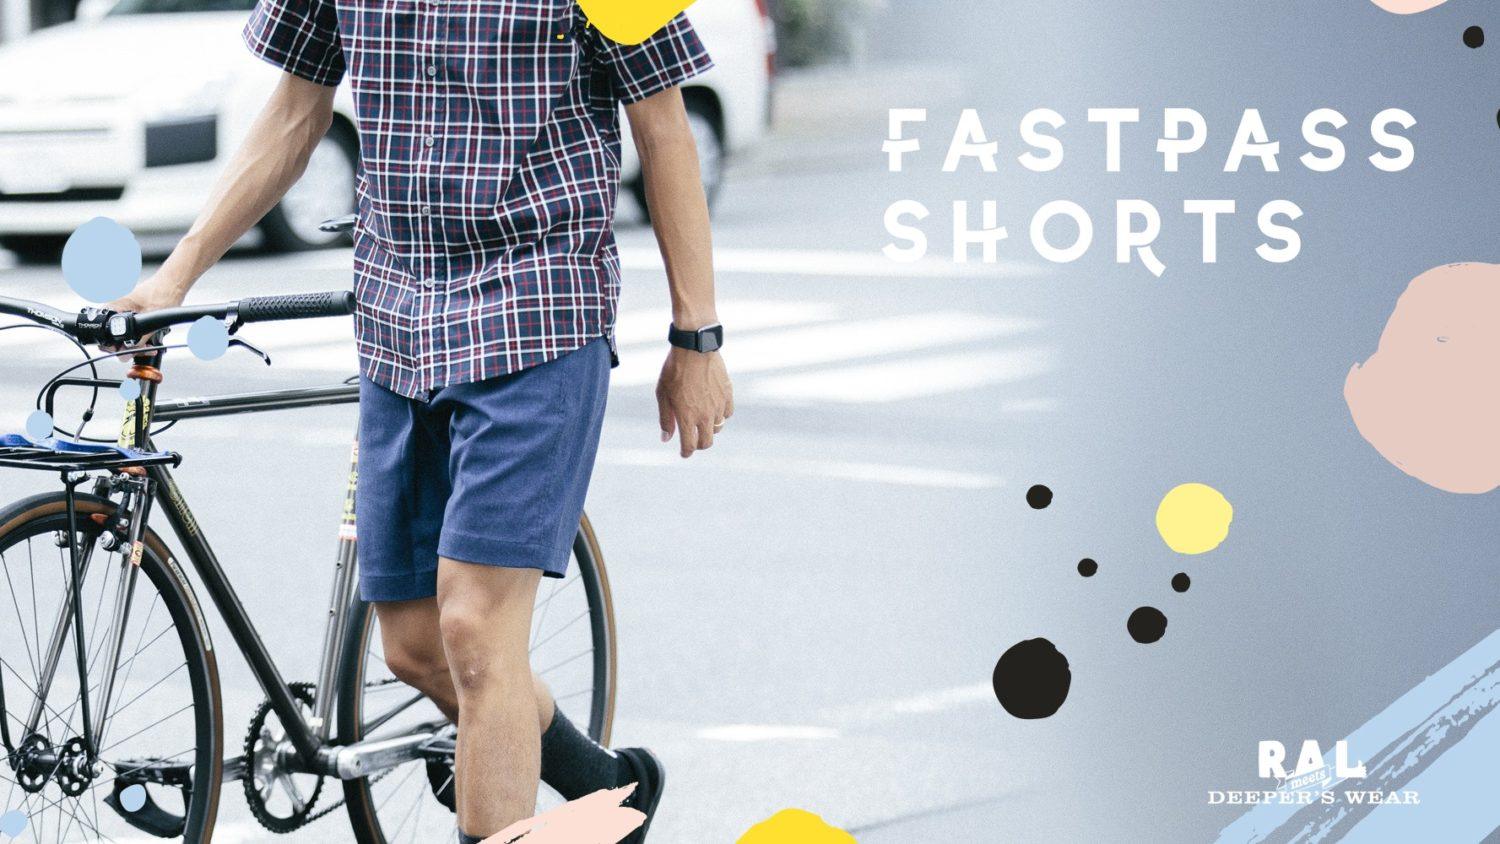 RAL meets DEEPER'S WEAR / Fast Pass Shorts